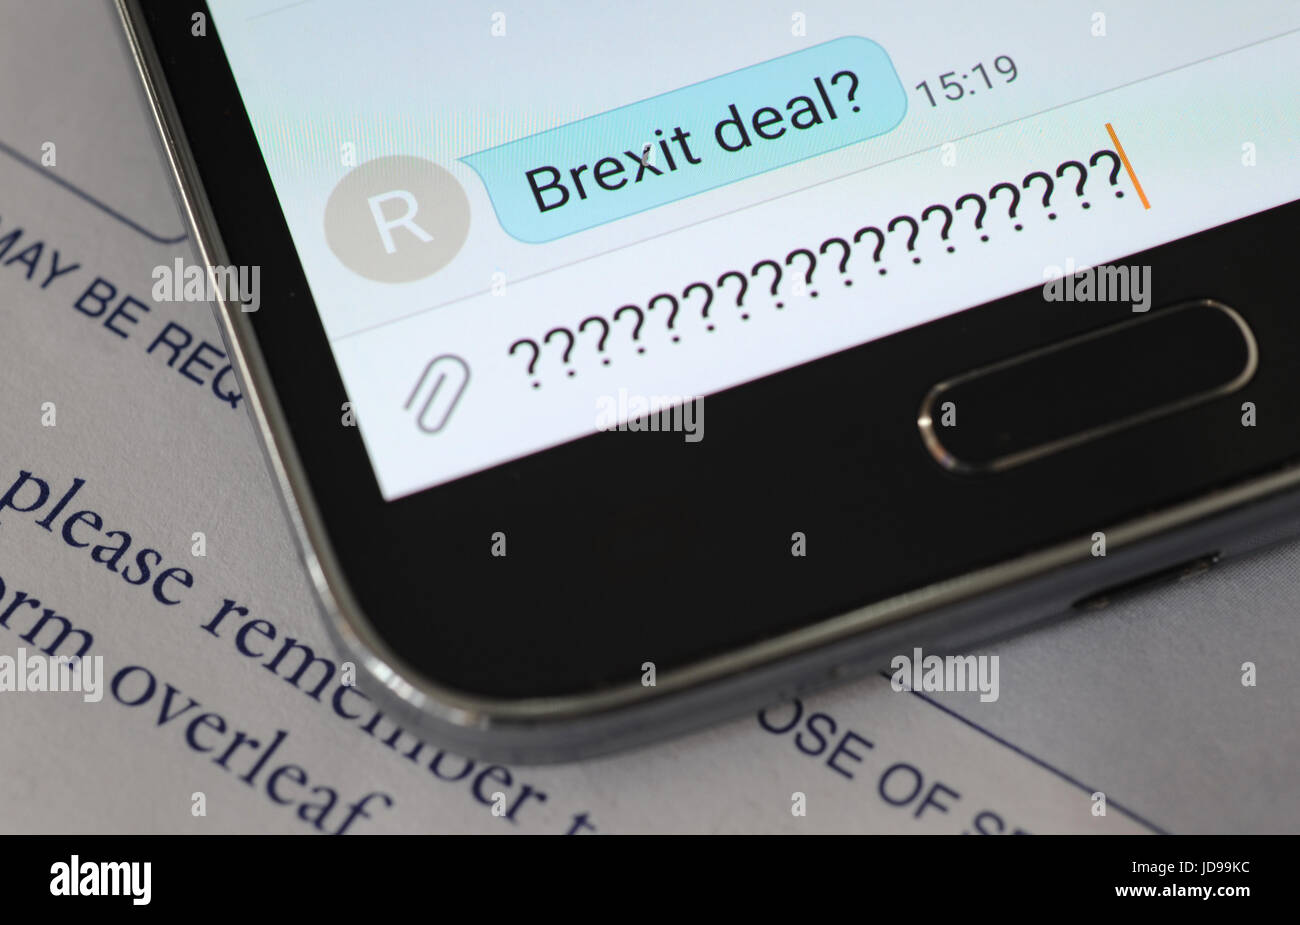 BREXIT MESSAGE ON SMARTPHONE RE THE EU LEAVING THE EUROPEAN UNION TALKS DEALS NEGOTIATIONS SOCIAL MEDIA CAMPAIGN - Stock Image